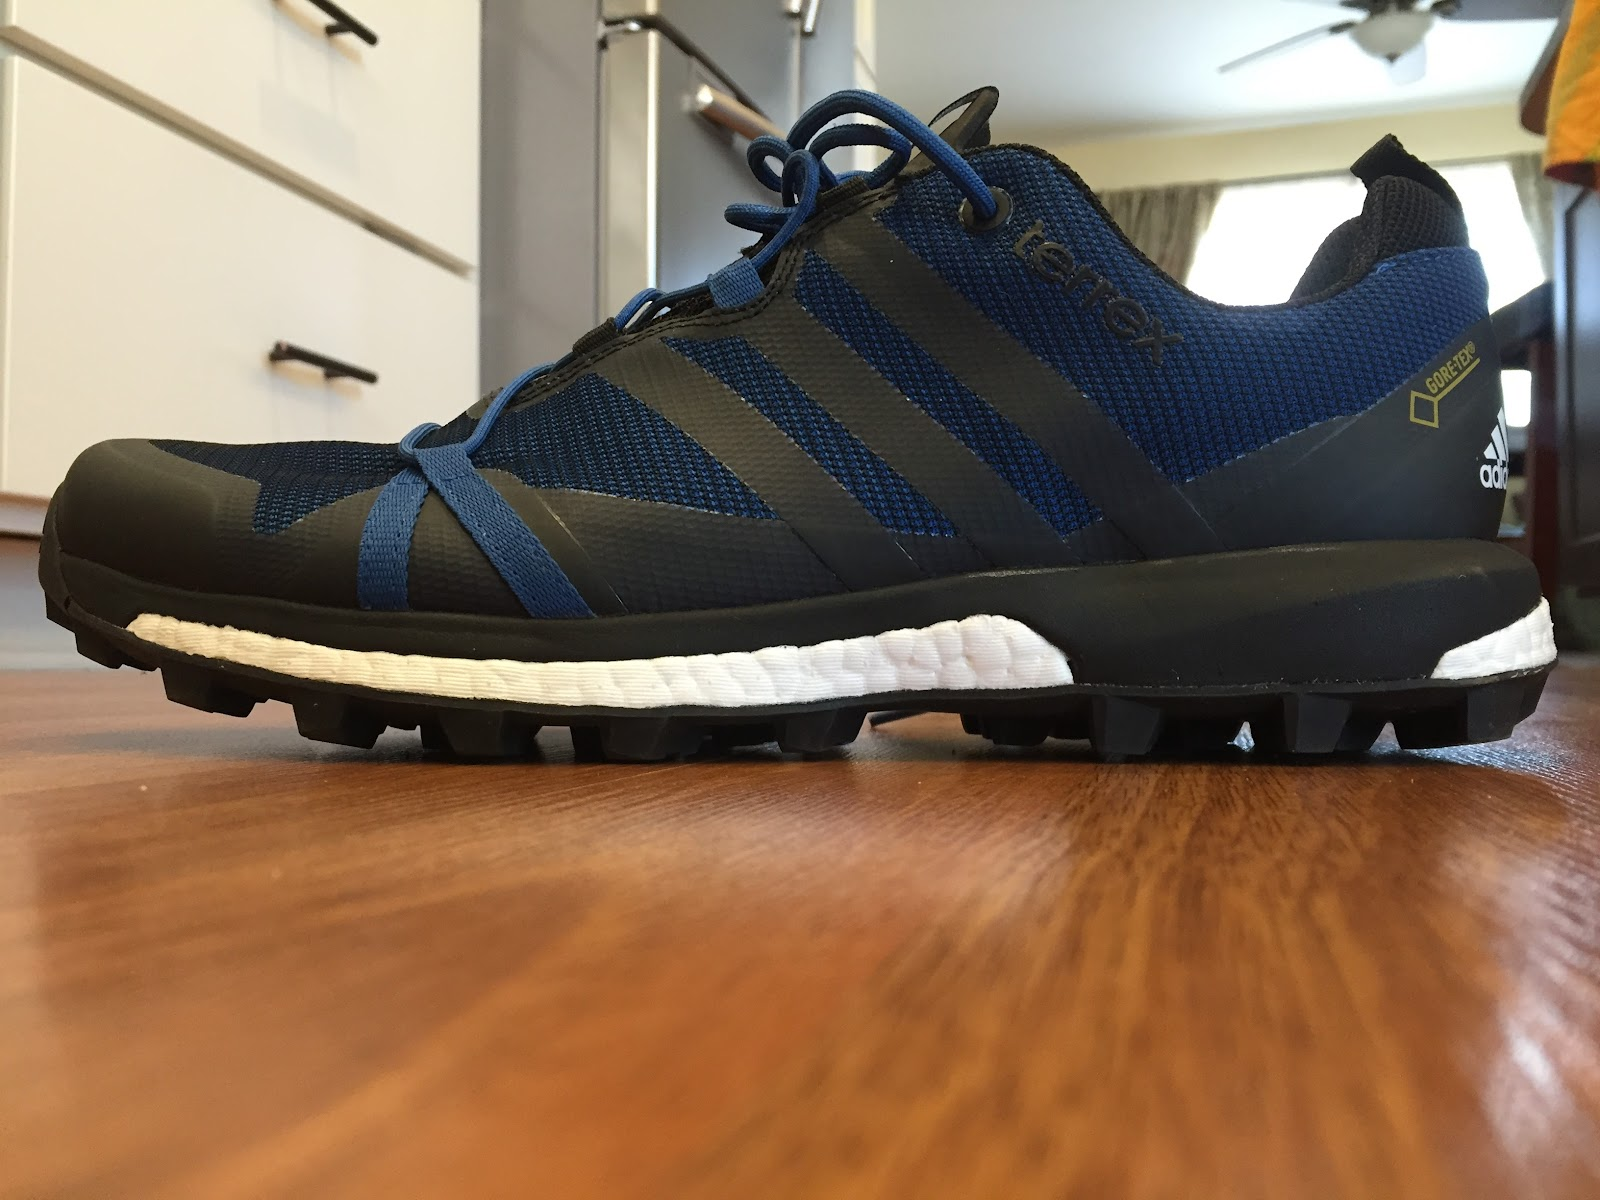 f7a5c288a1862 The adidas Boost midsole material gets widespread and almost universal  praise for its blend of cushion and responsive properties. Though I have  recognized ...